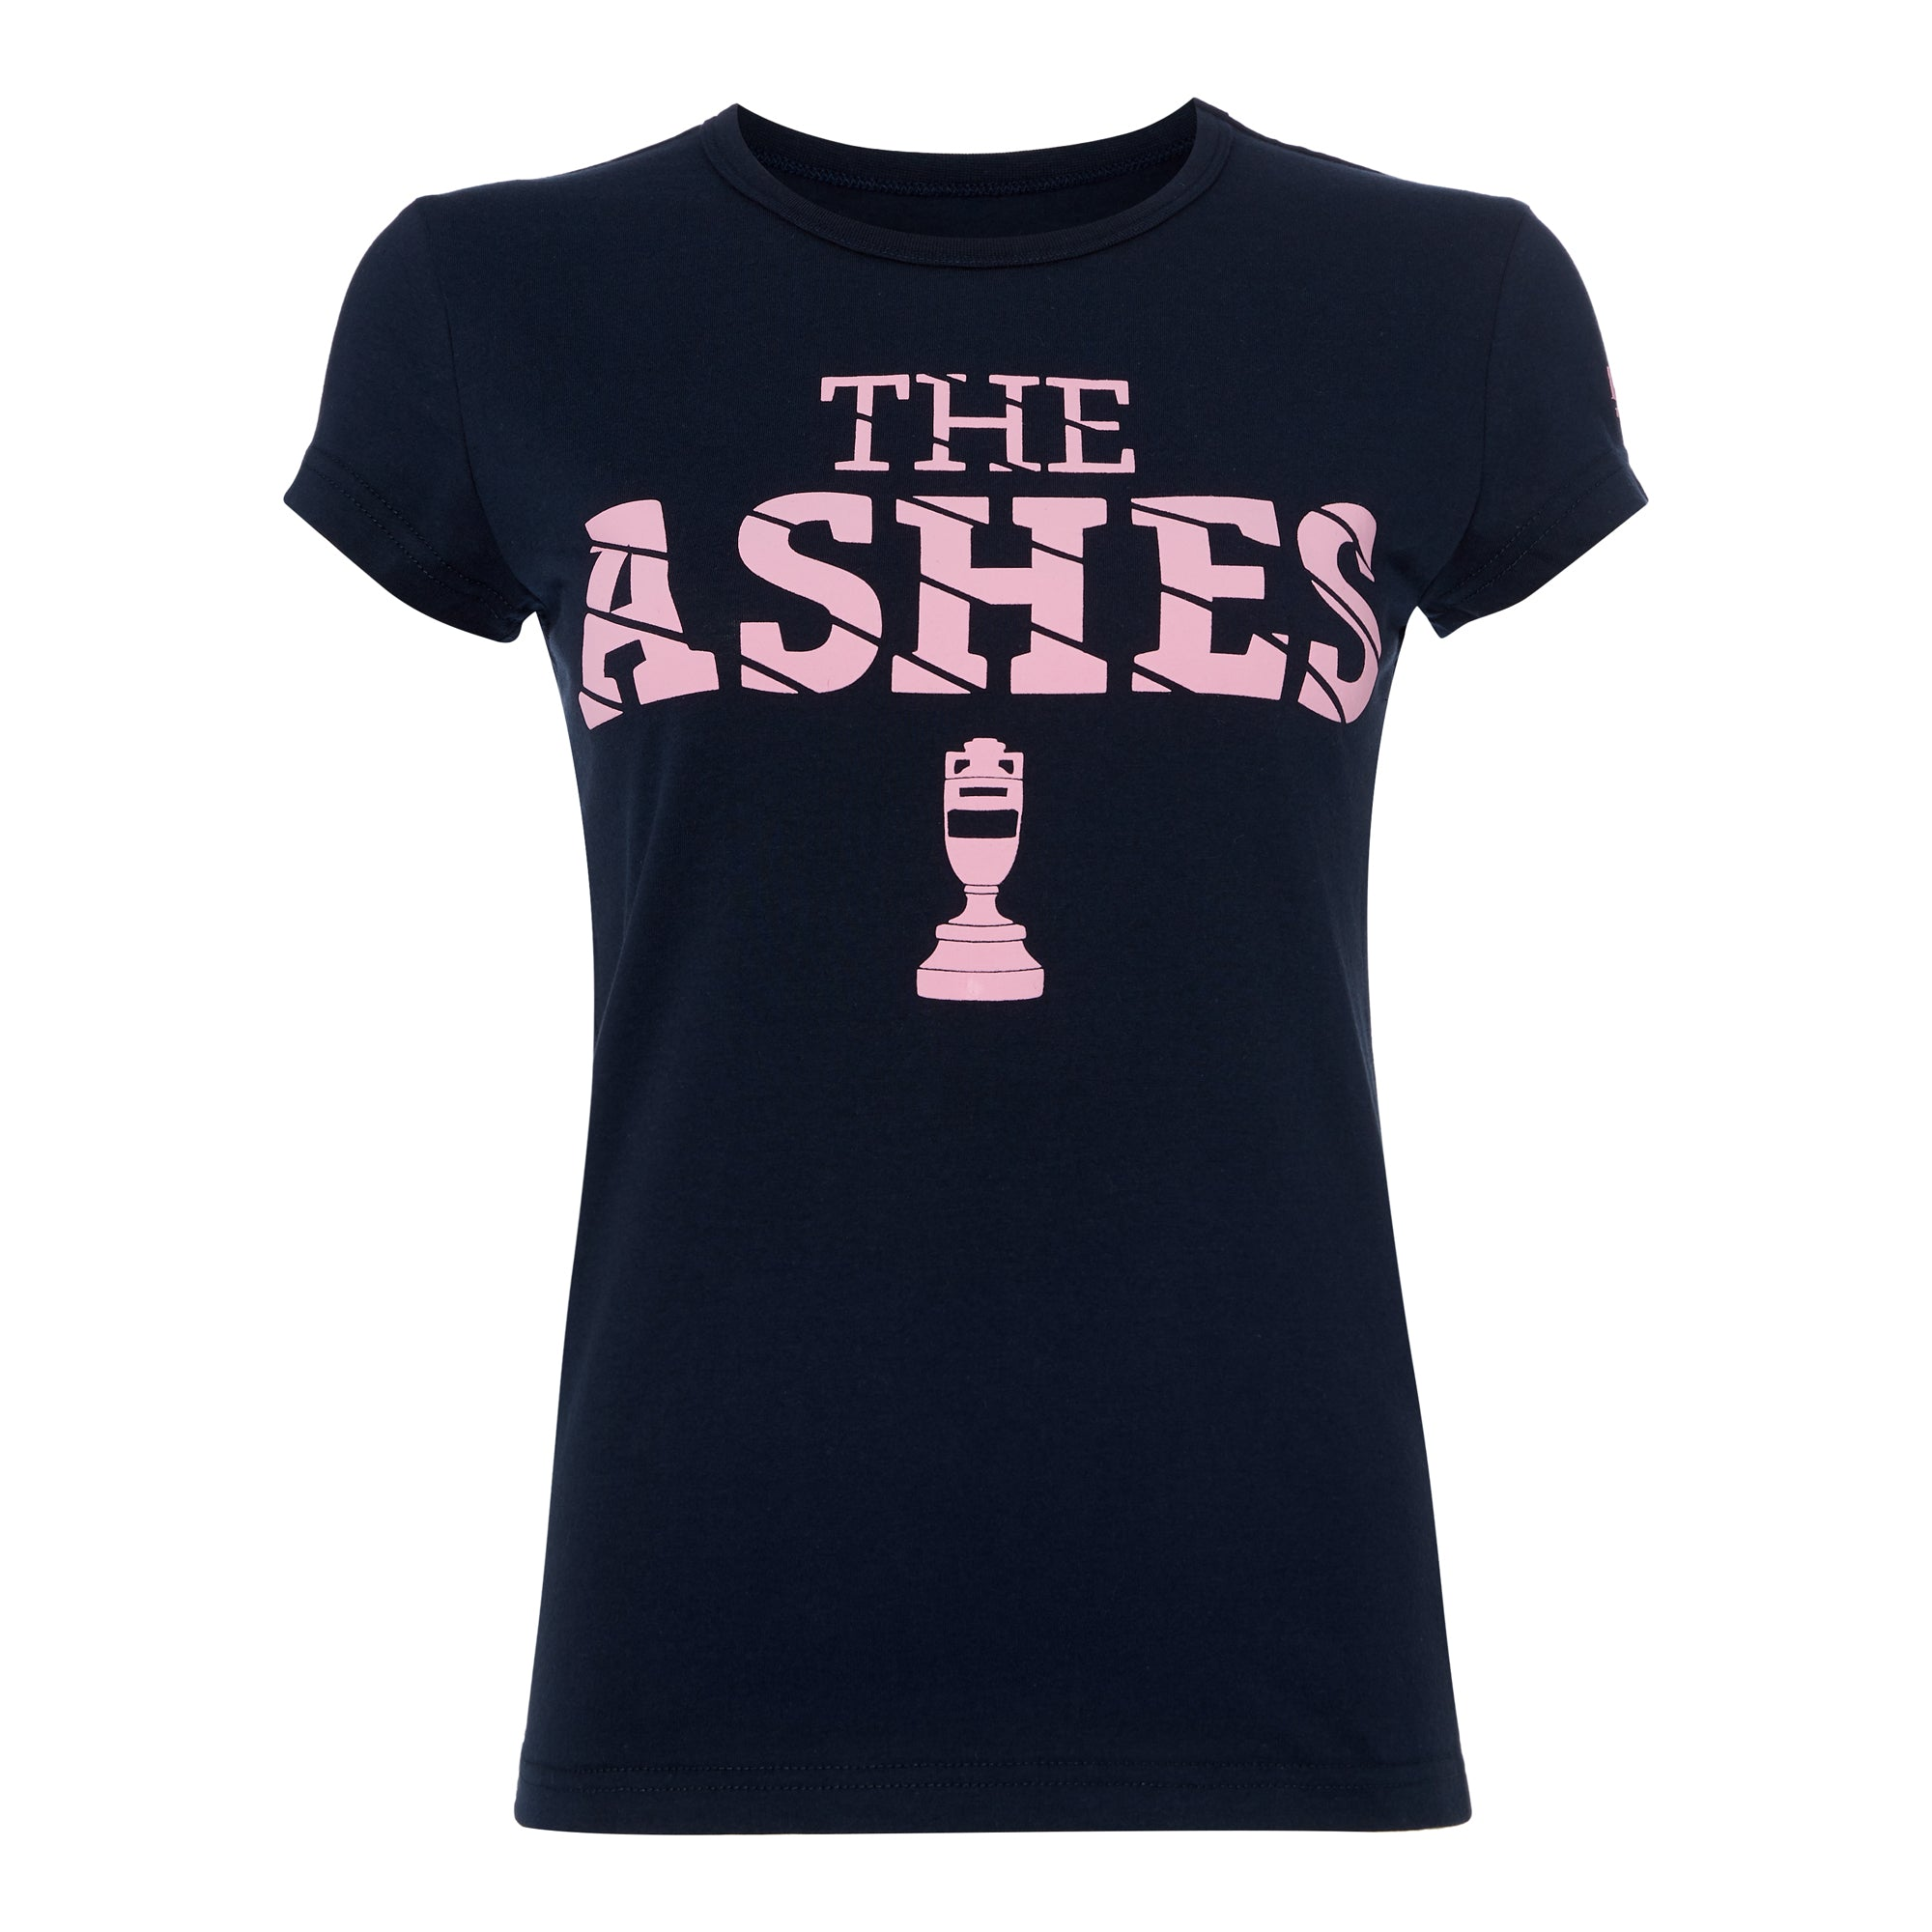 ASHES URN PUFF PRINT NAVY/PINK T-SHIRT